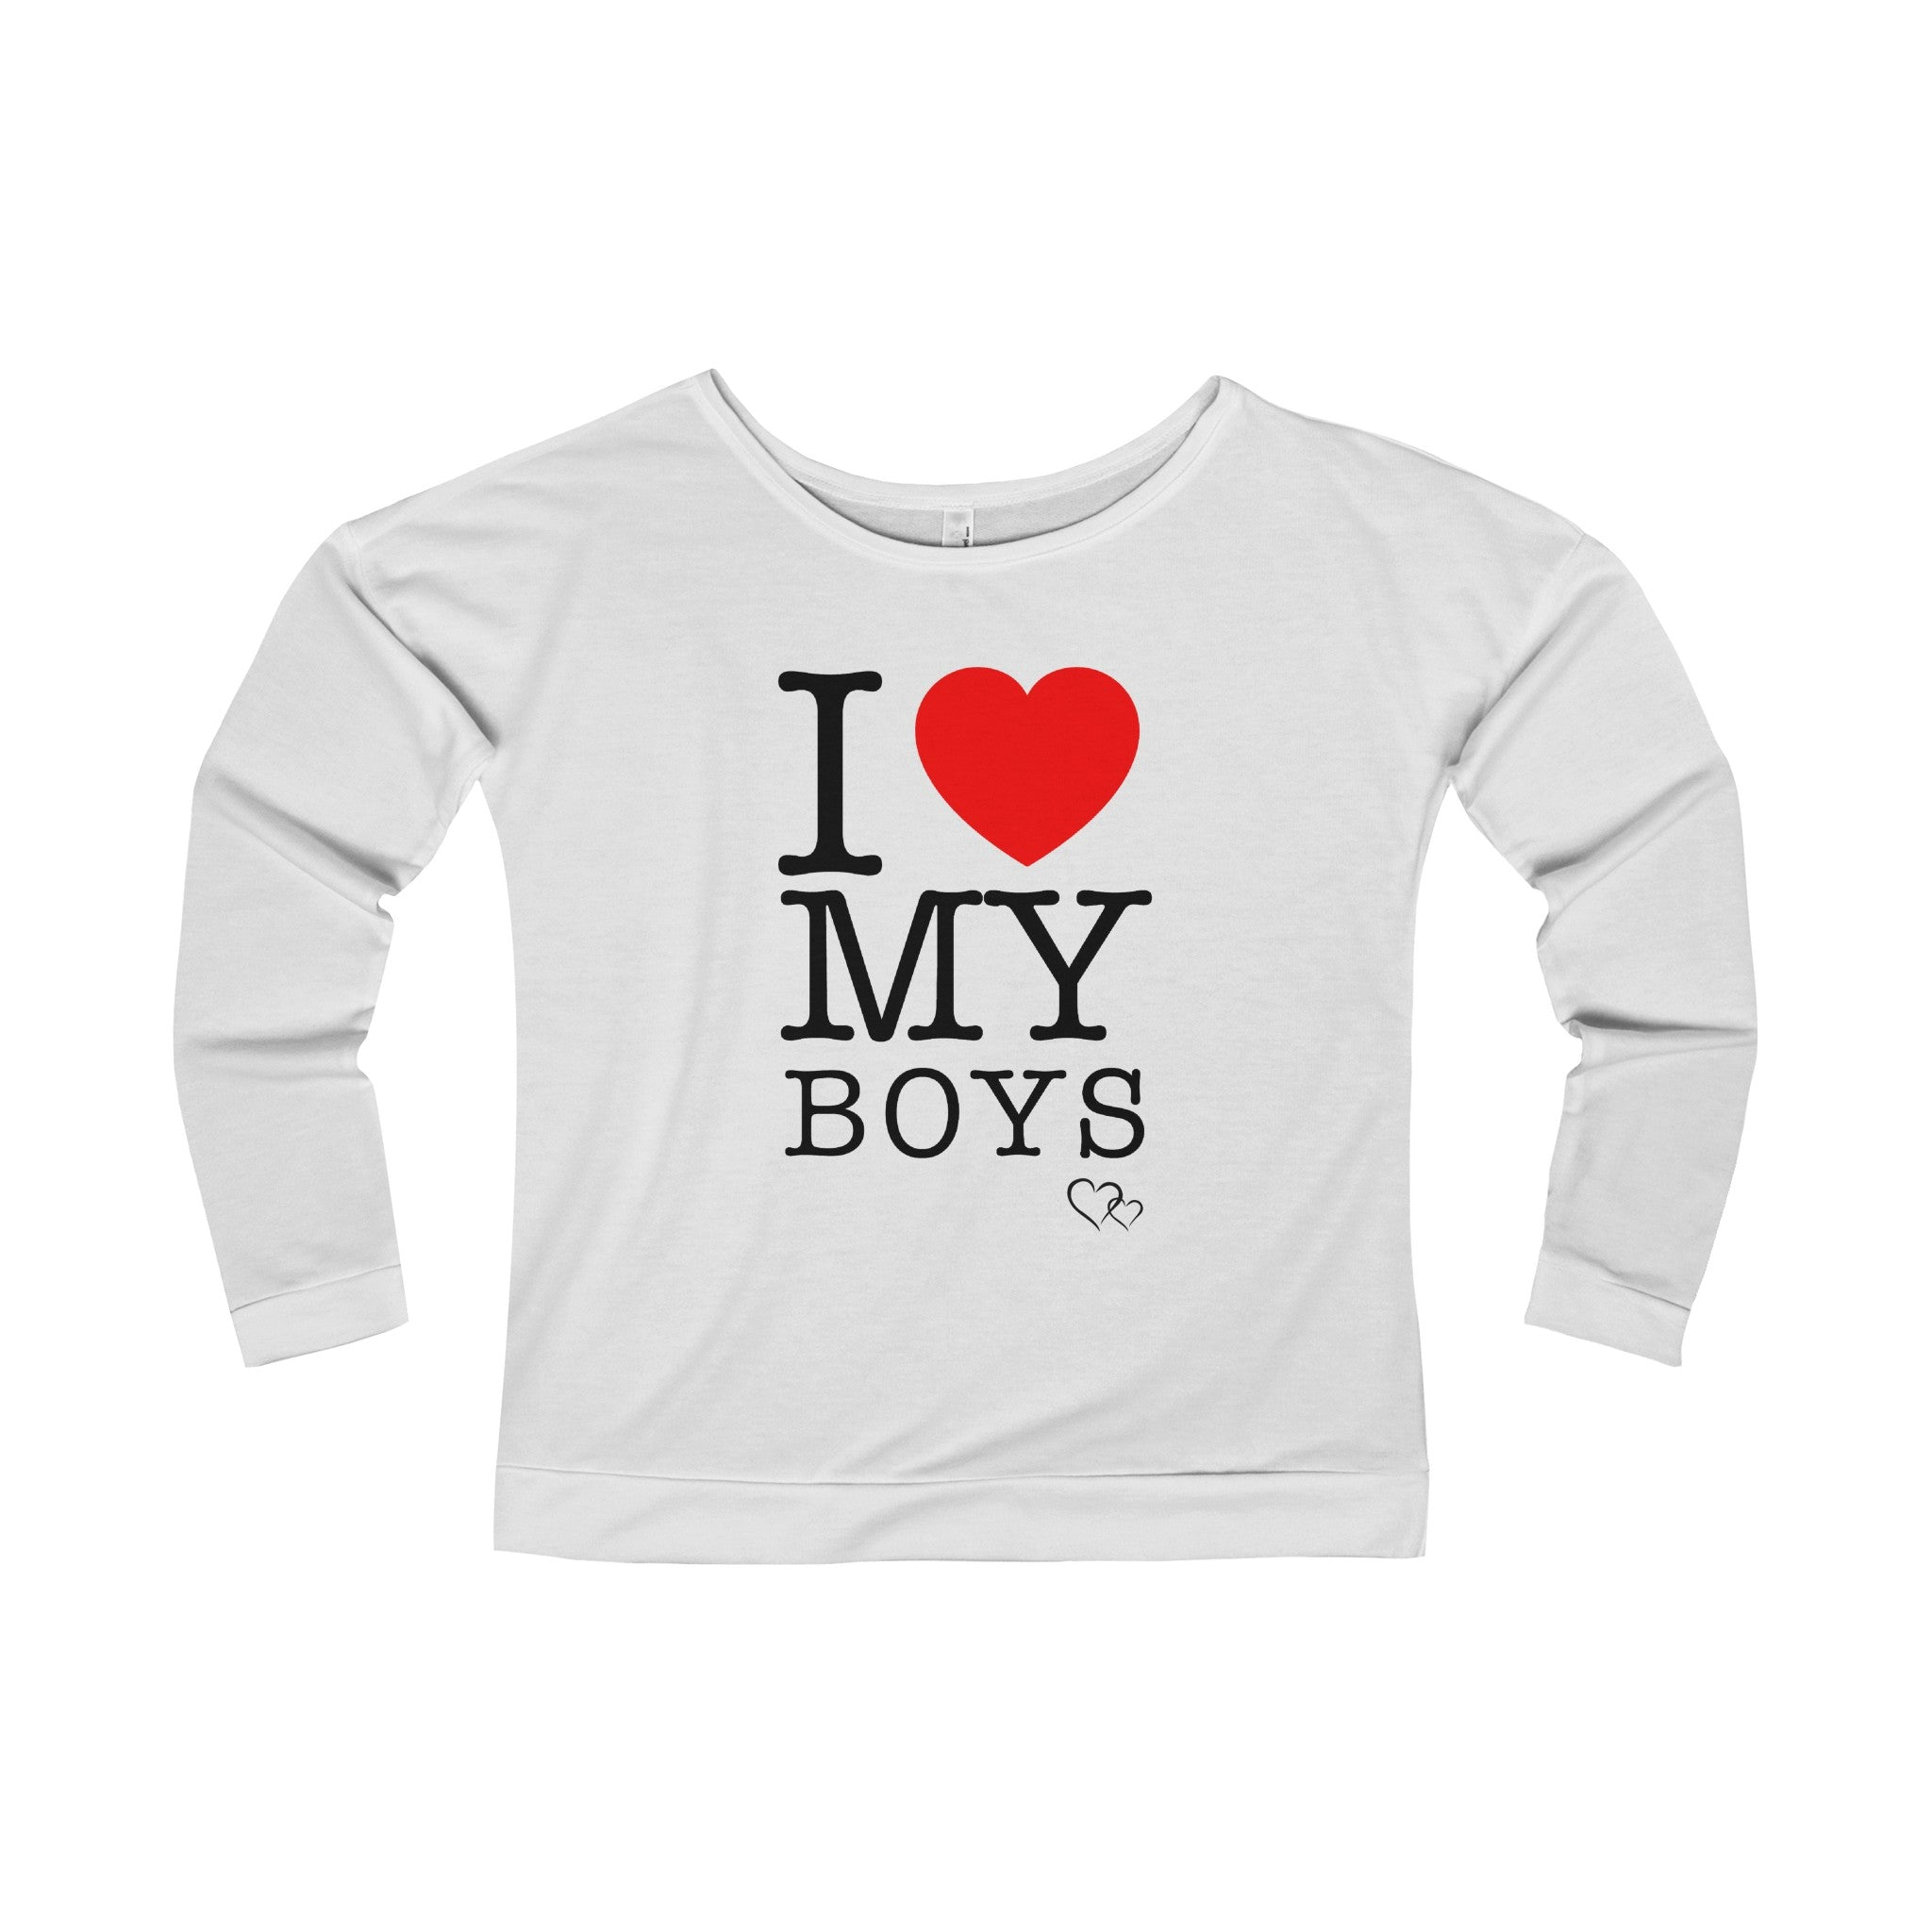 I LOVE MY BOYS - Long Sleeve Scoop Terry T